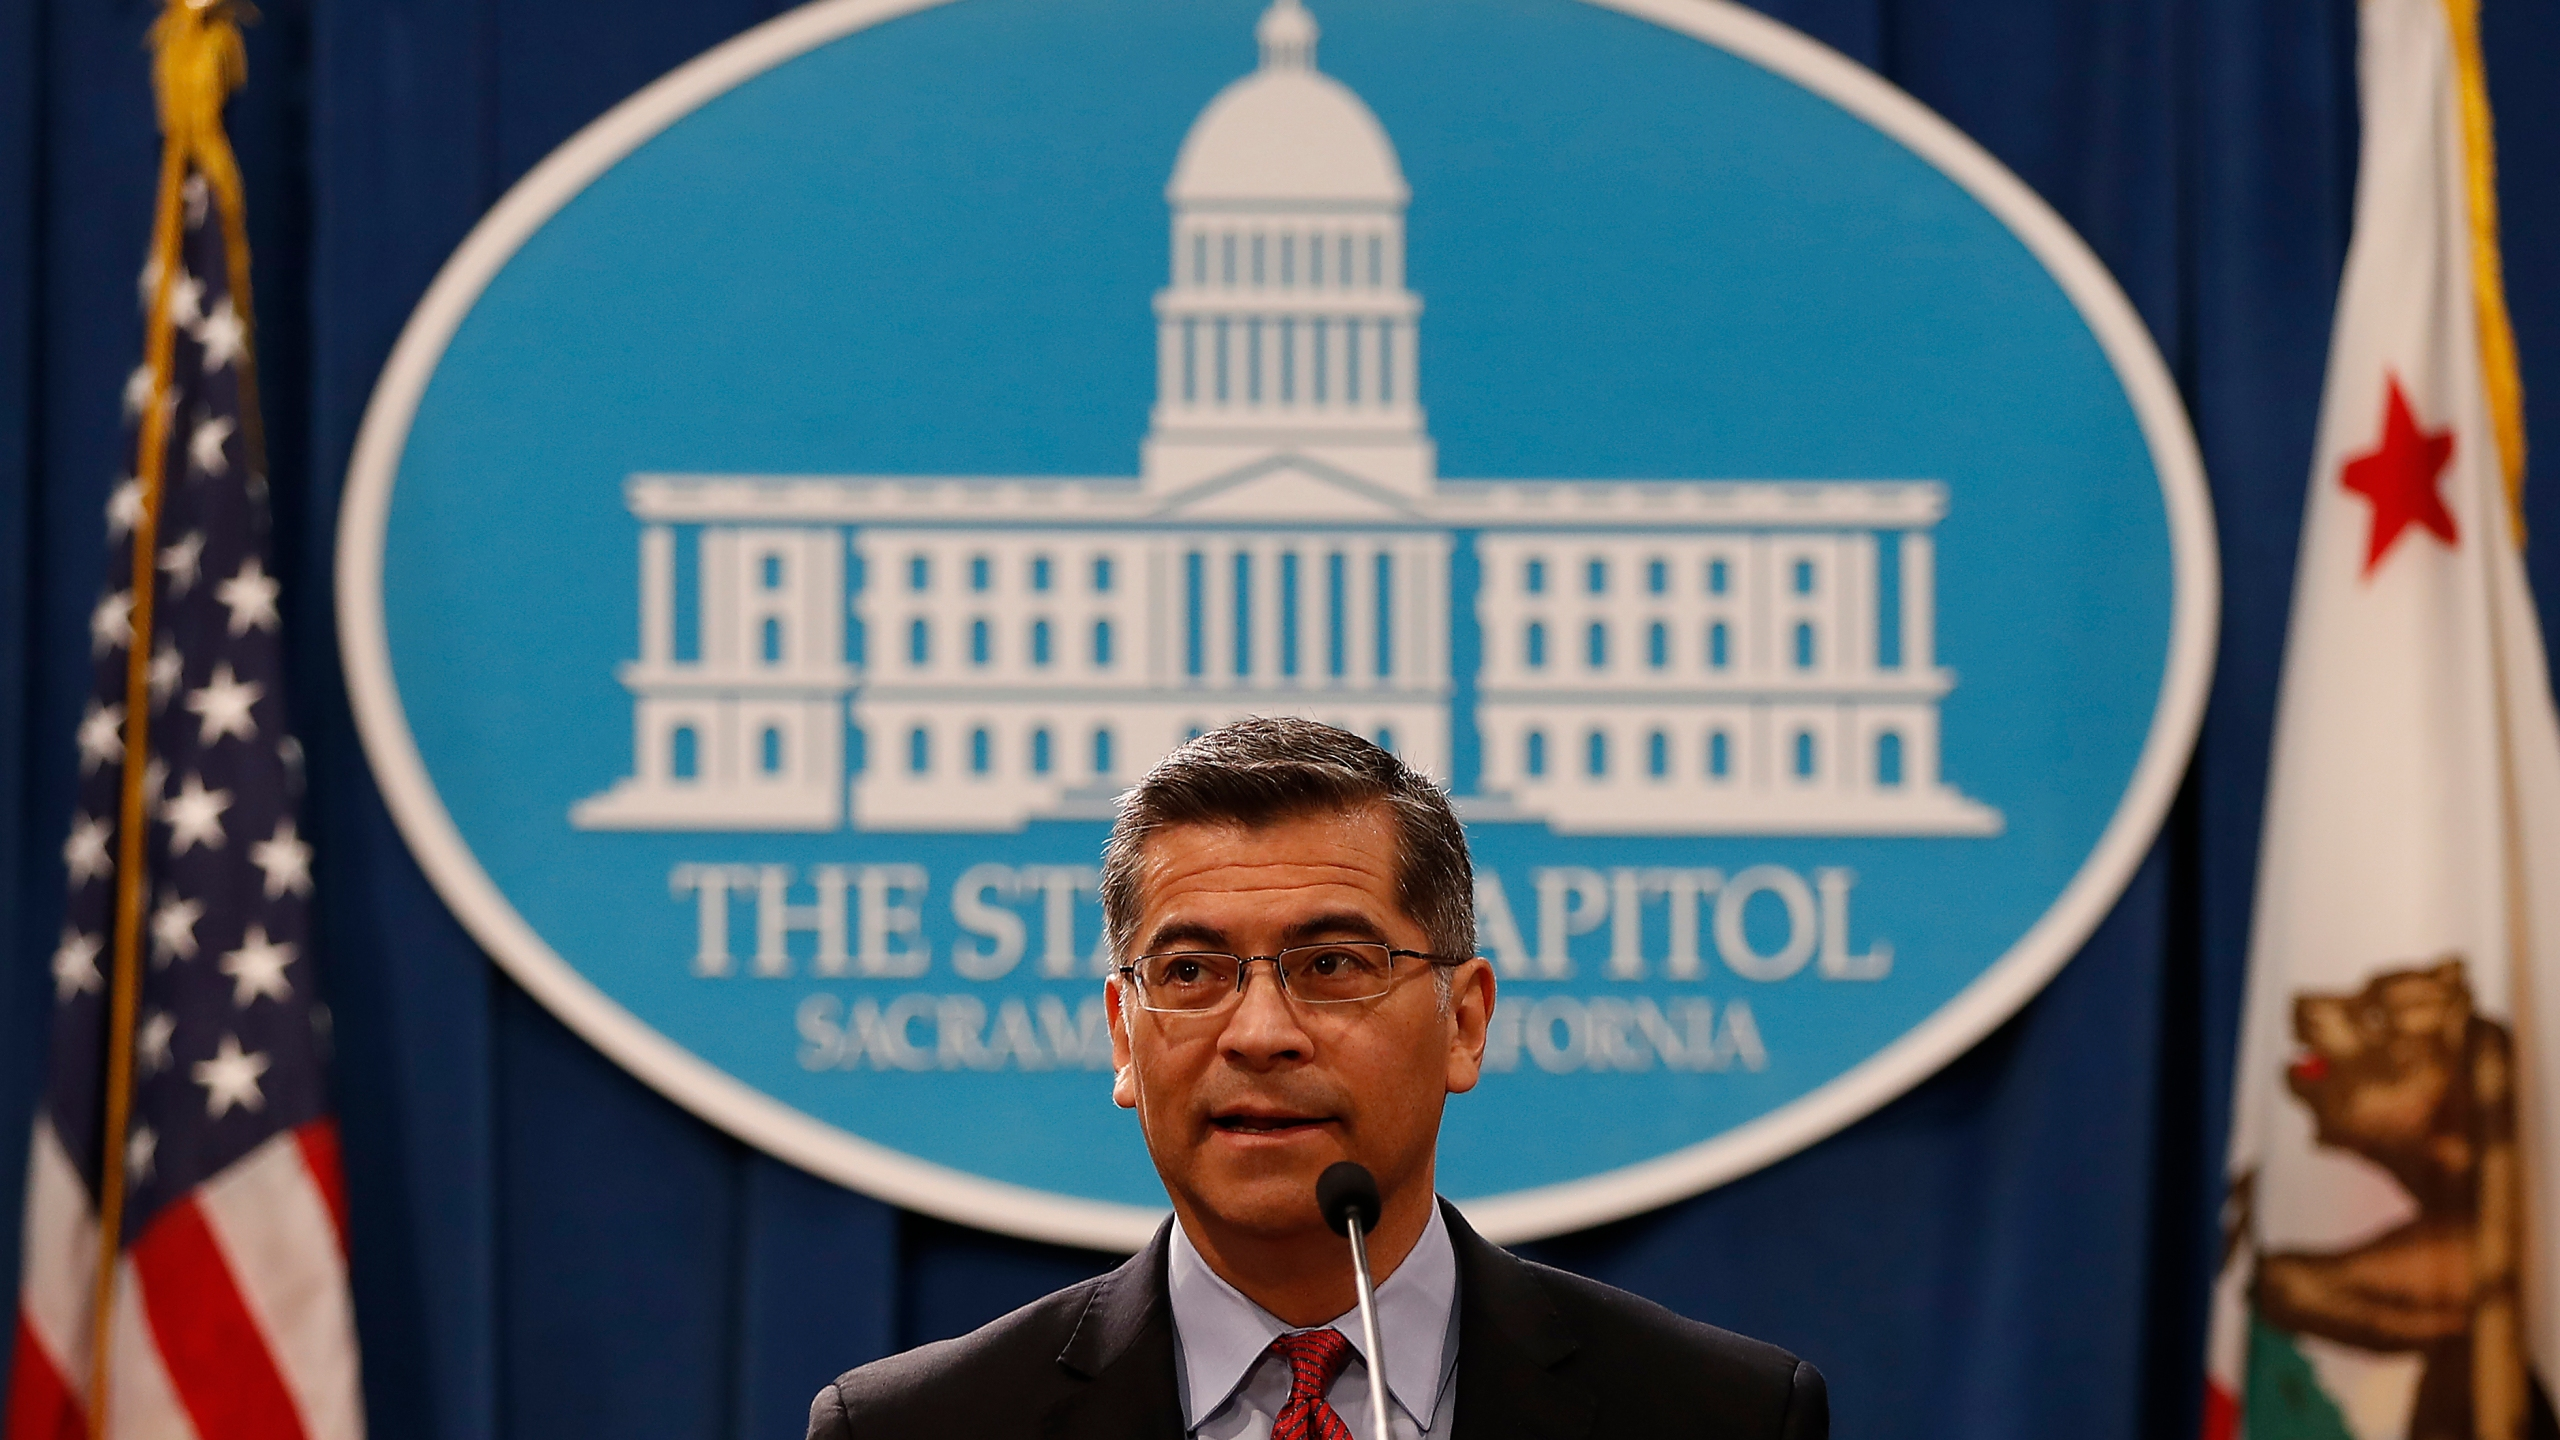 California Attorney General Xavier Becerra speaks during a press conference at the California State Capitol on March 7, 2018. (Credit: Stephen Lam/Getty Images)